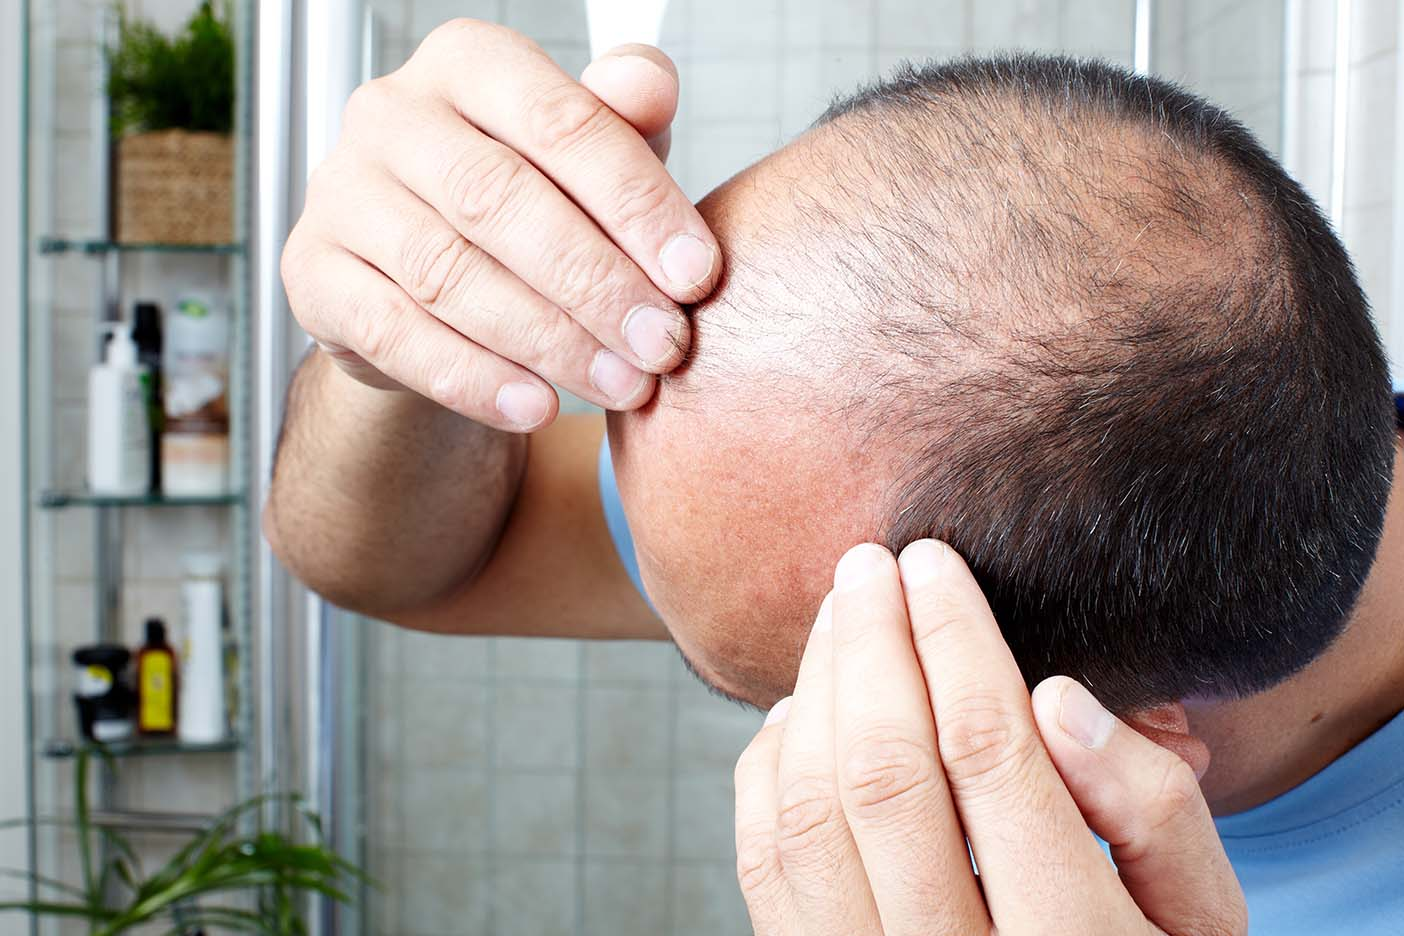 Types of Hair Loss that Cause Scarring